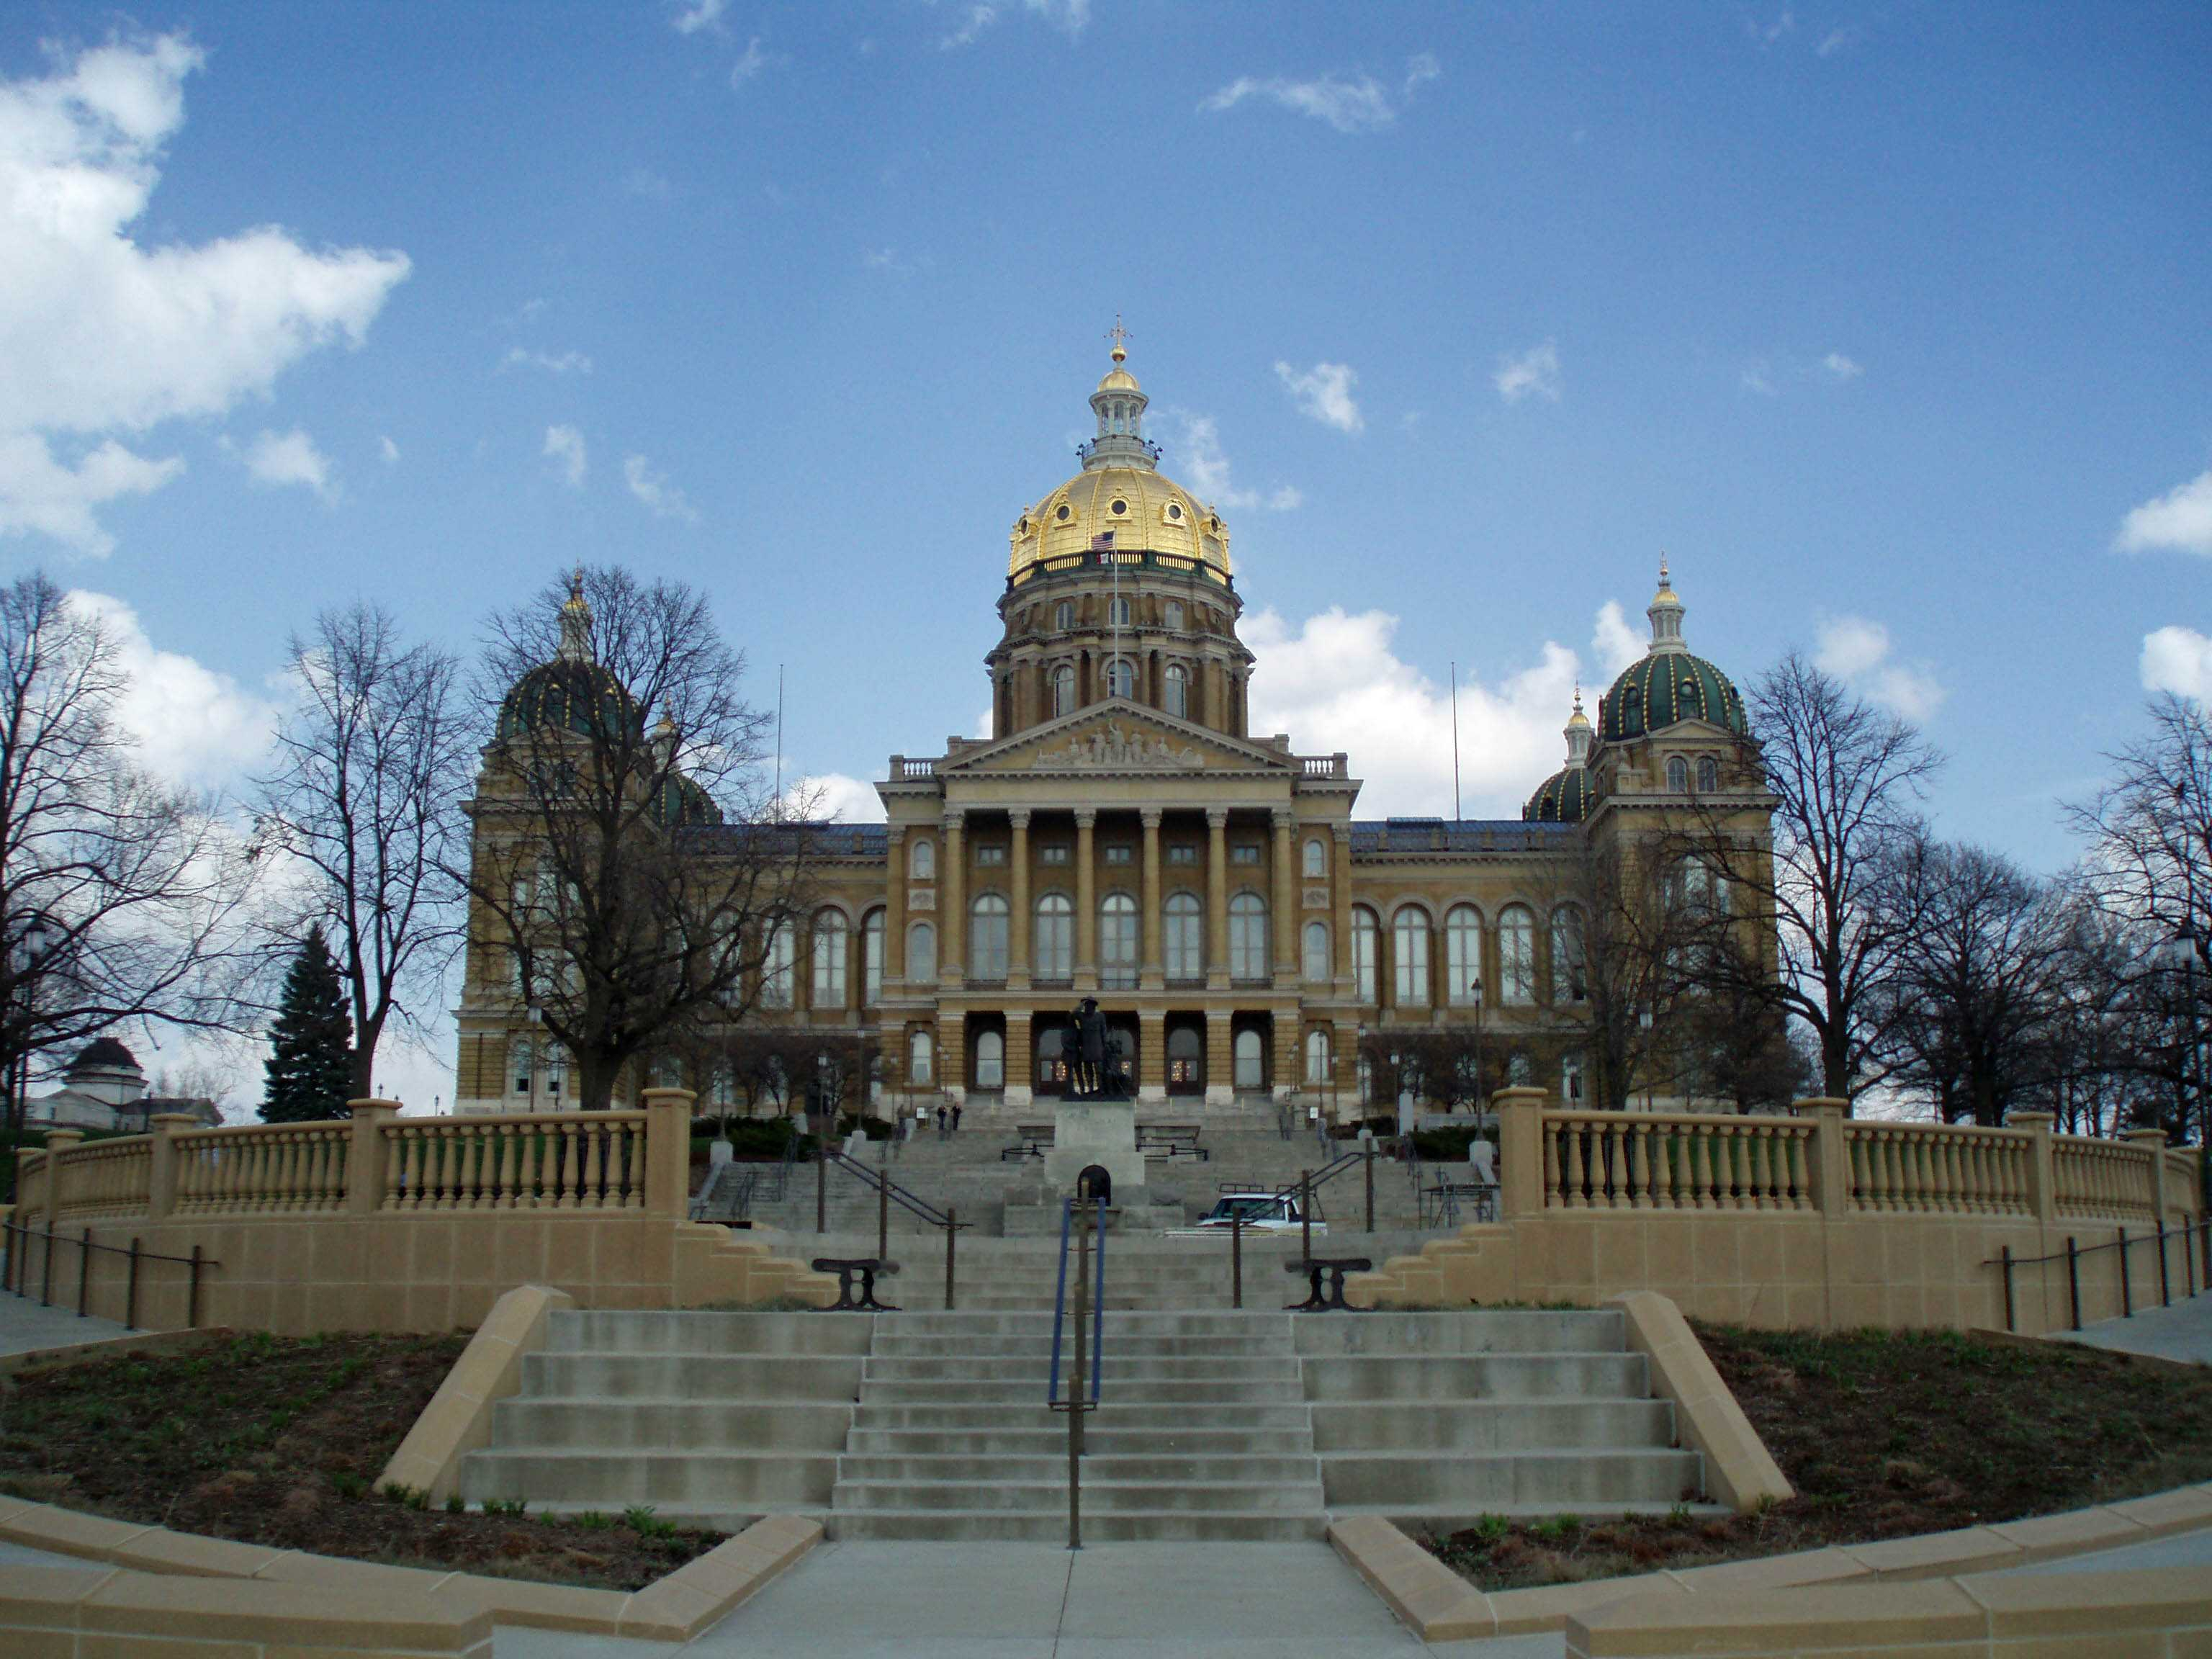 The Iowa State Capitol building is pictured above. State Senator Mark Chelgren proposed a bill that would seek even political representation among Iowa college professors